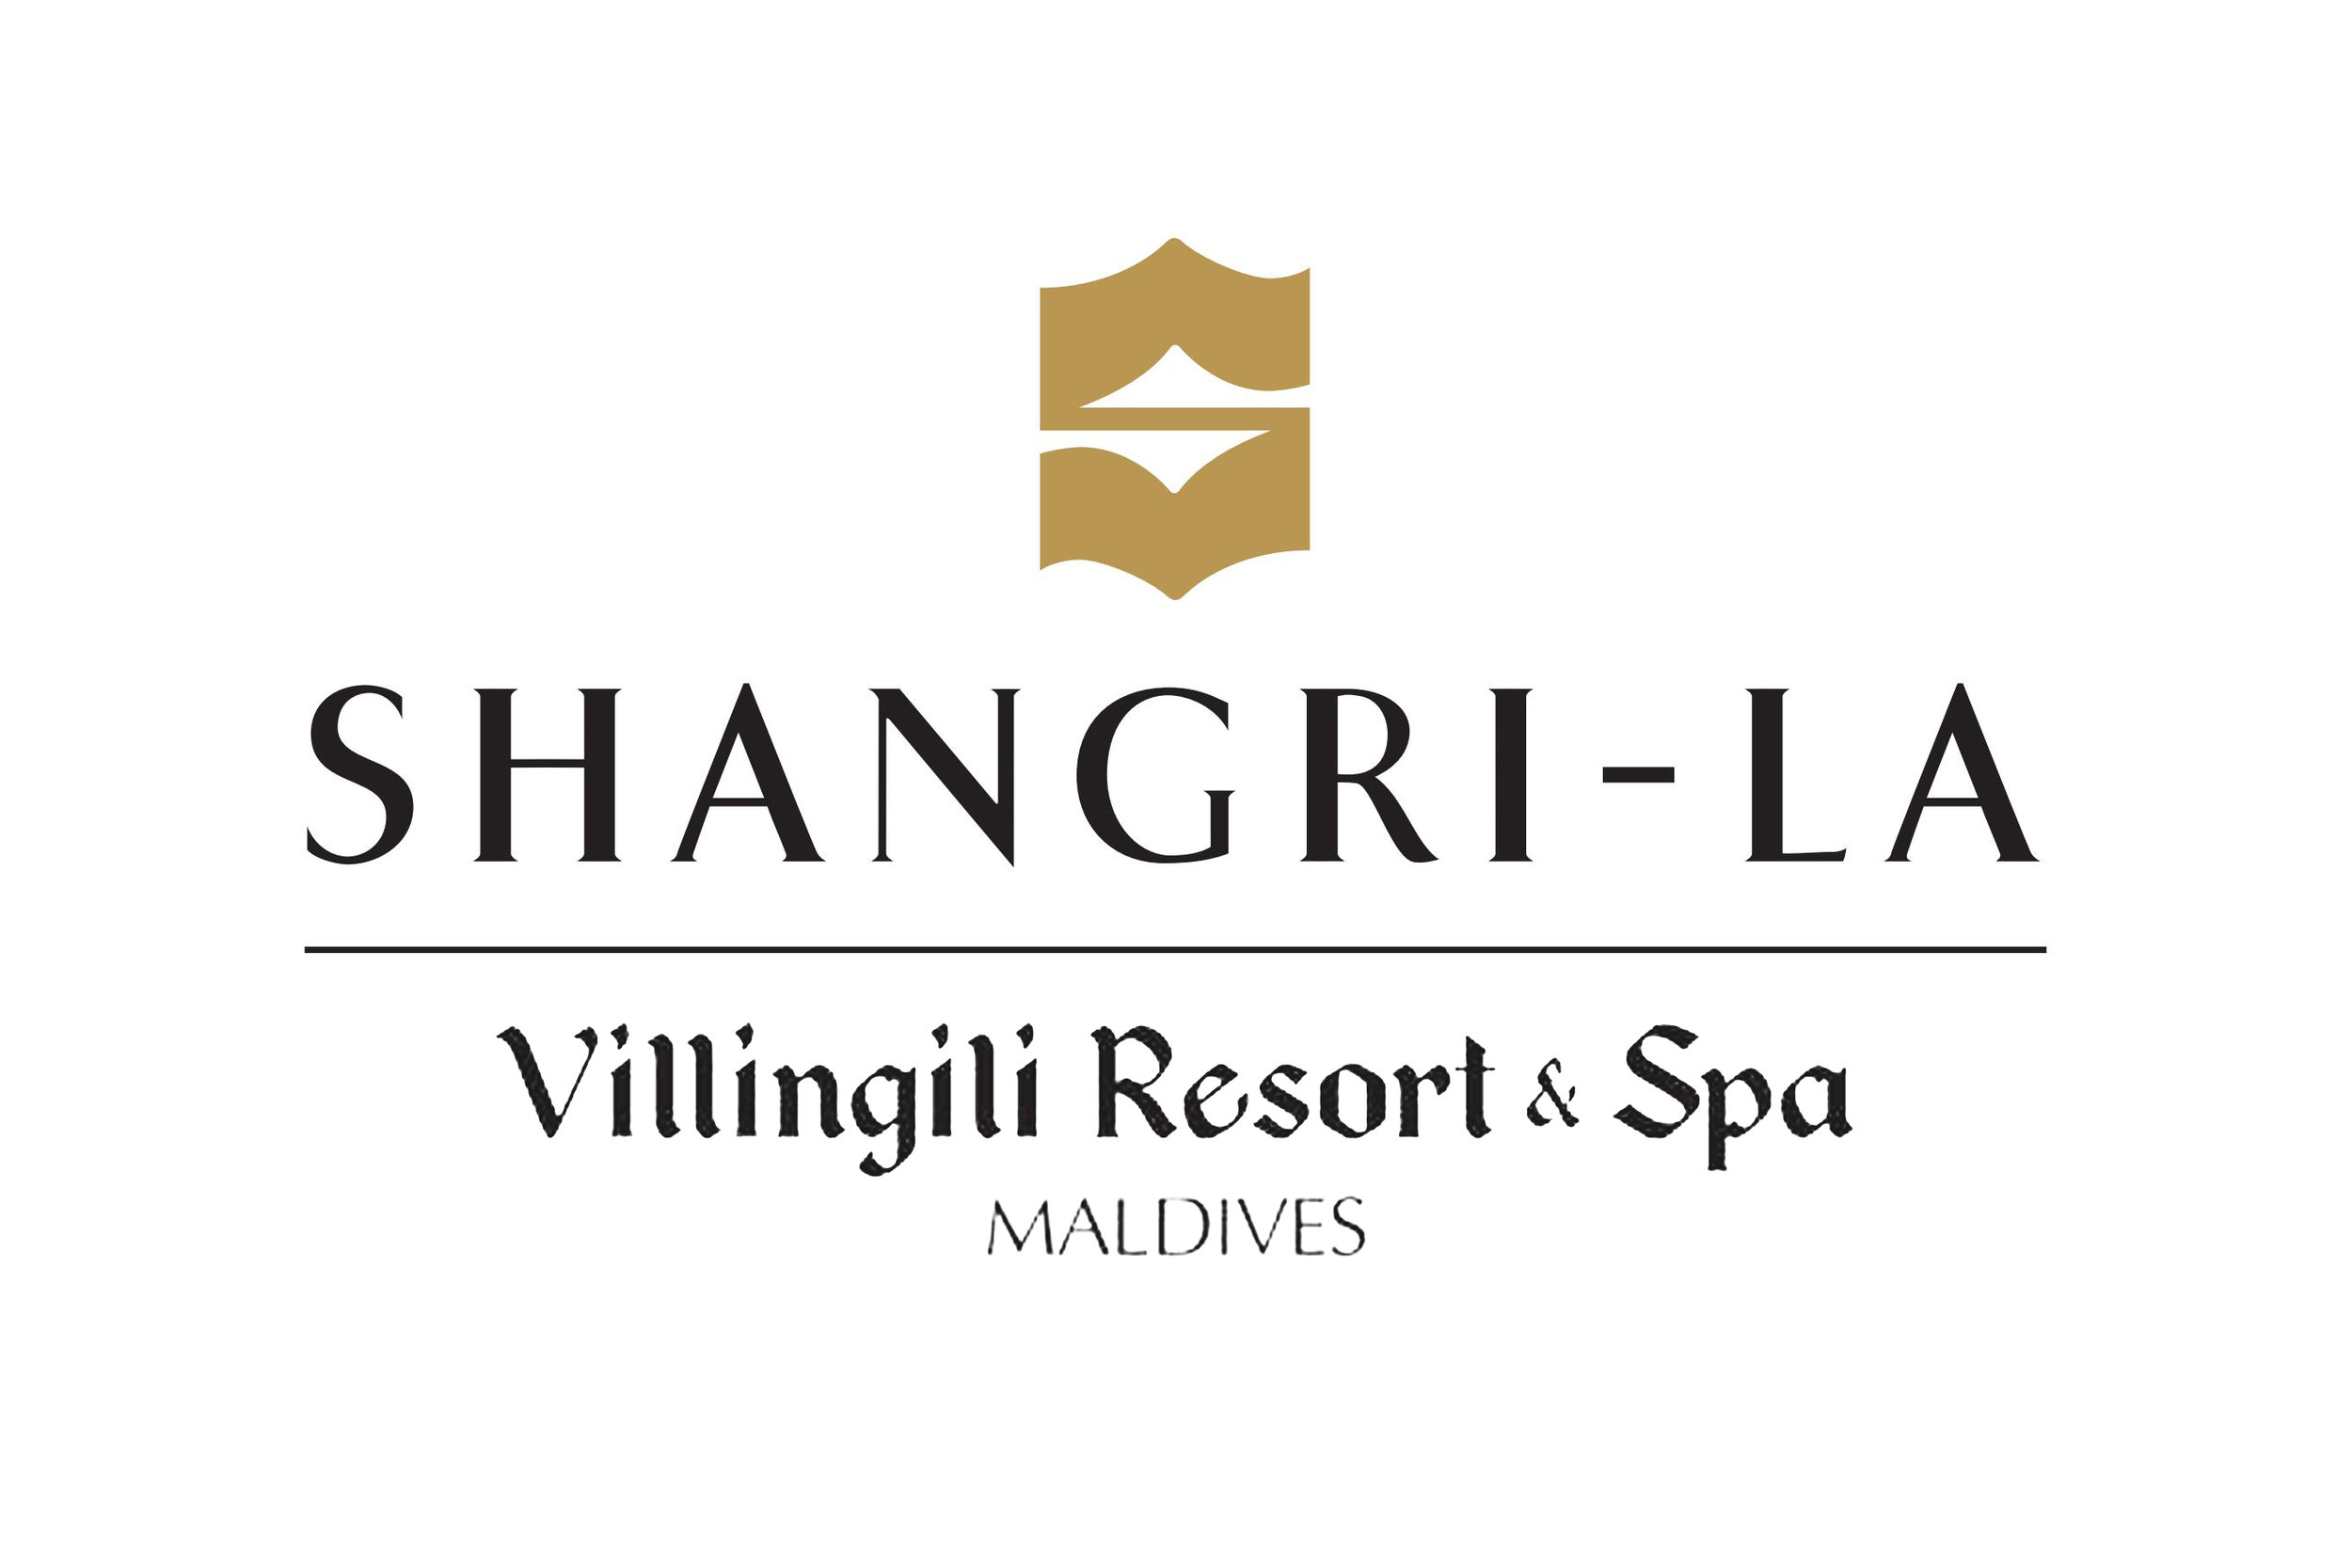 shangri-la_hotels_and_resots-logo copy.jpg